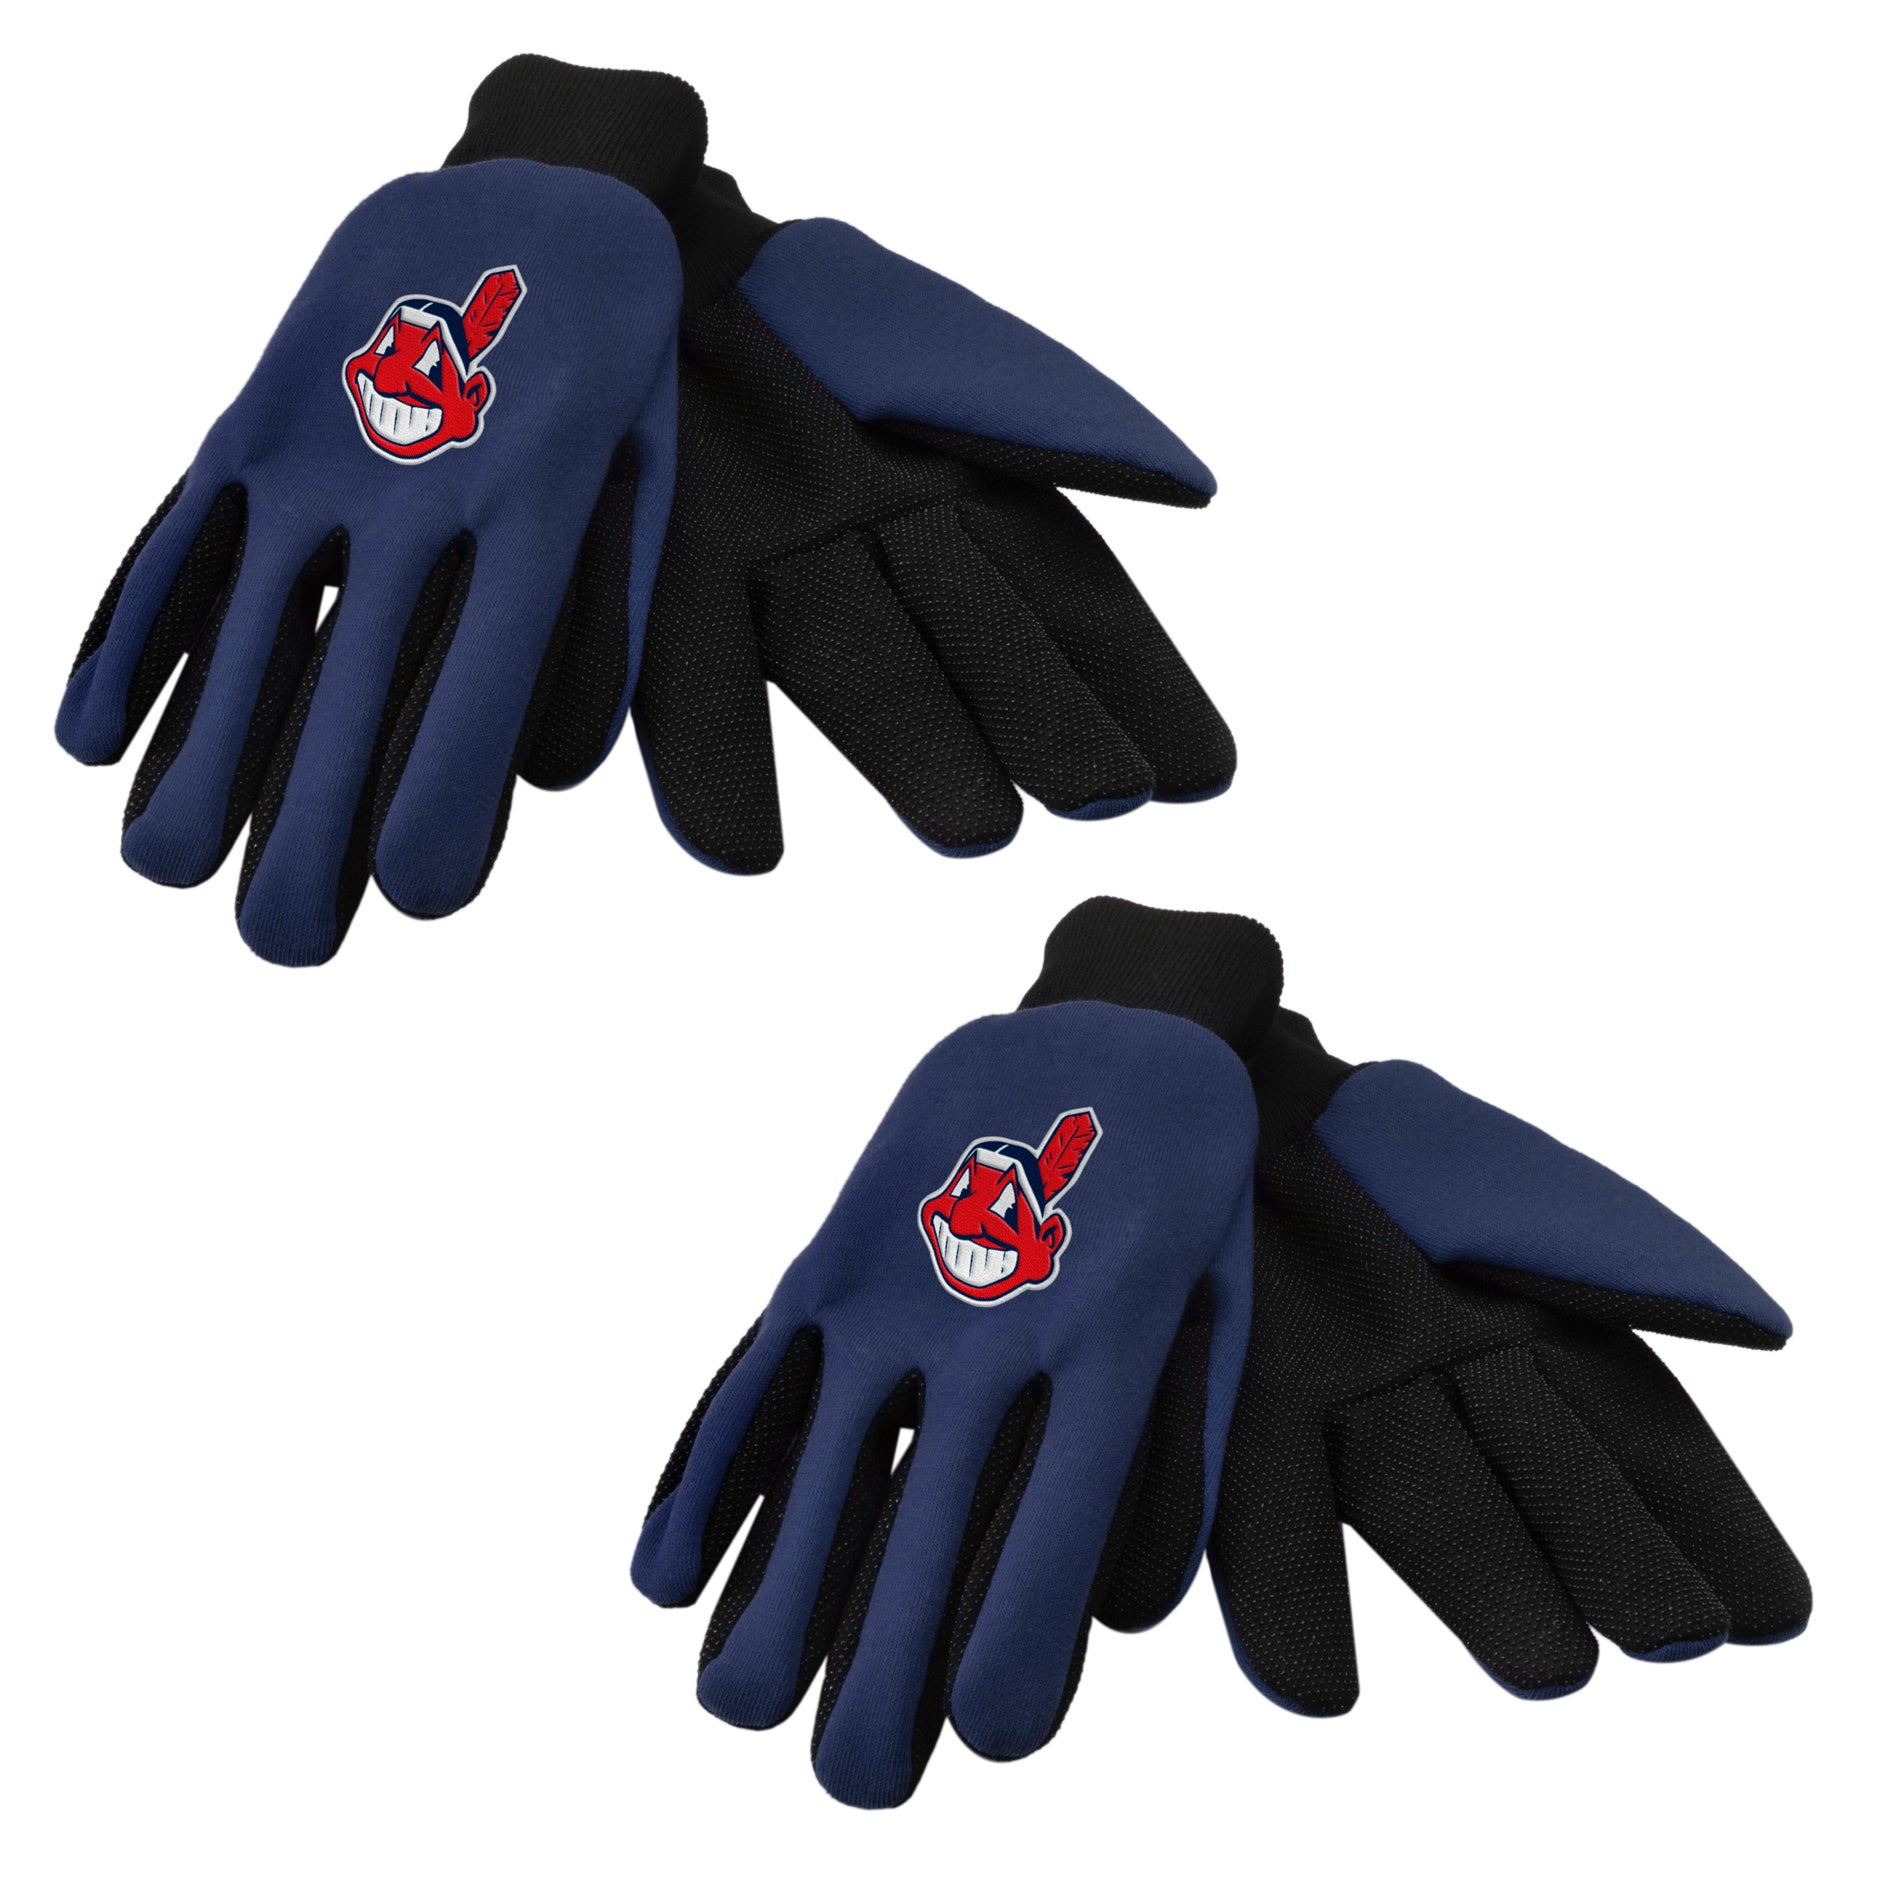 Forever Collectibles Cleveland Indians Two-tone Gloves (Set of 2 Pair)